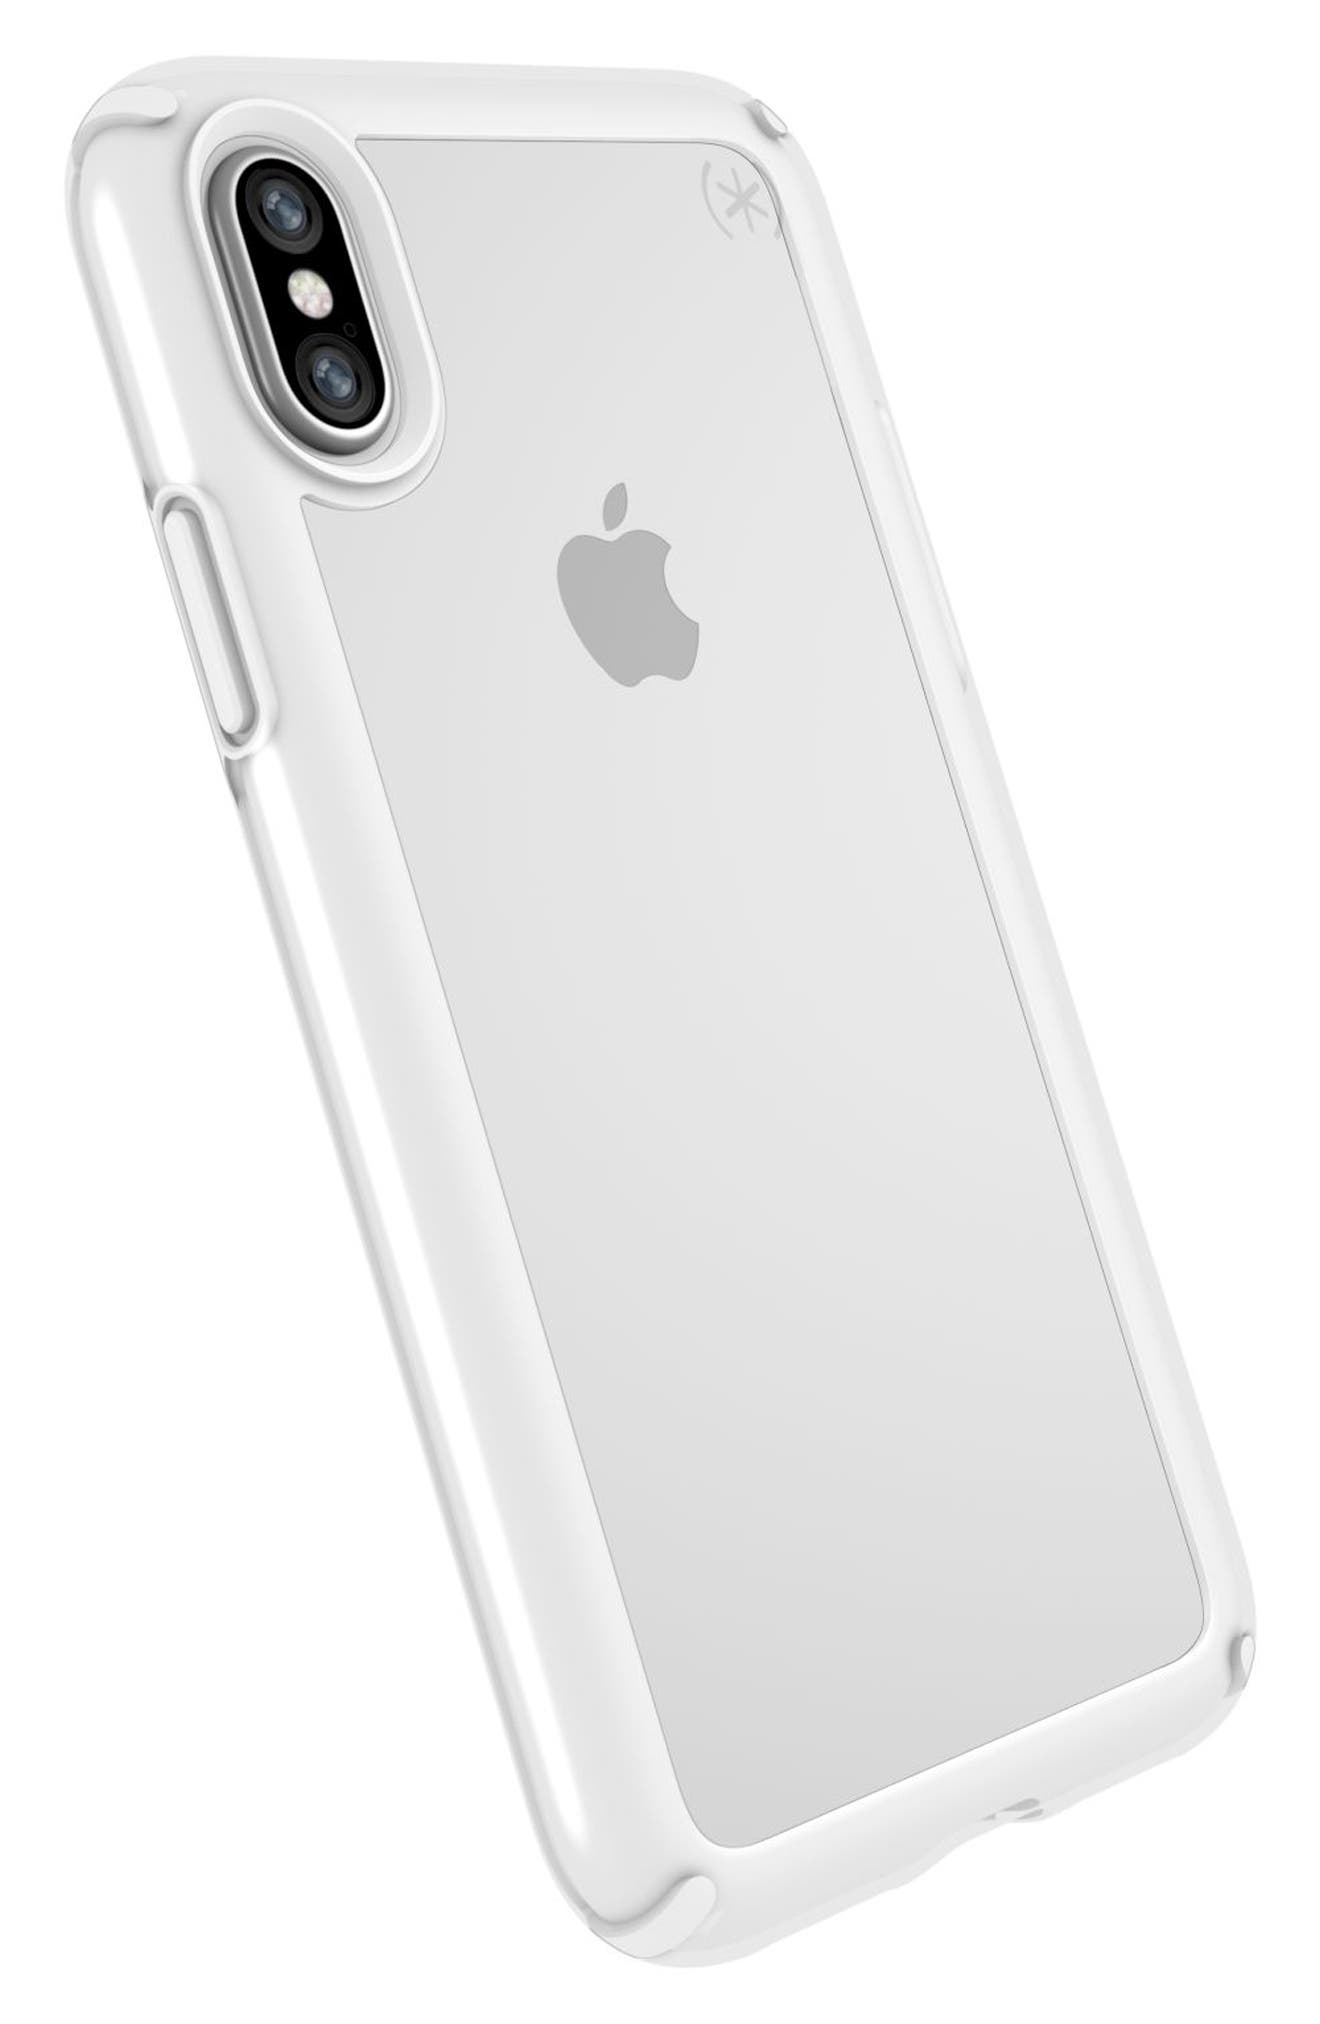 Transparent iPhone X & Xs Case,                             Alternate thumbnail 8, color,                             CLEAR/ BRIGHT WHITE